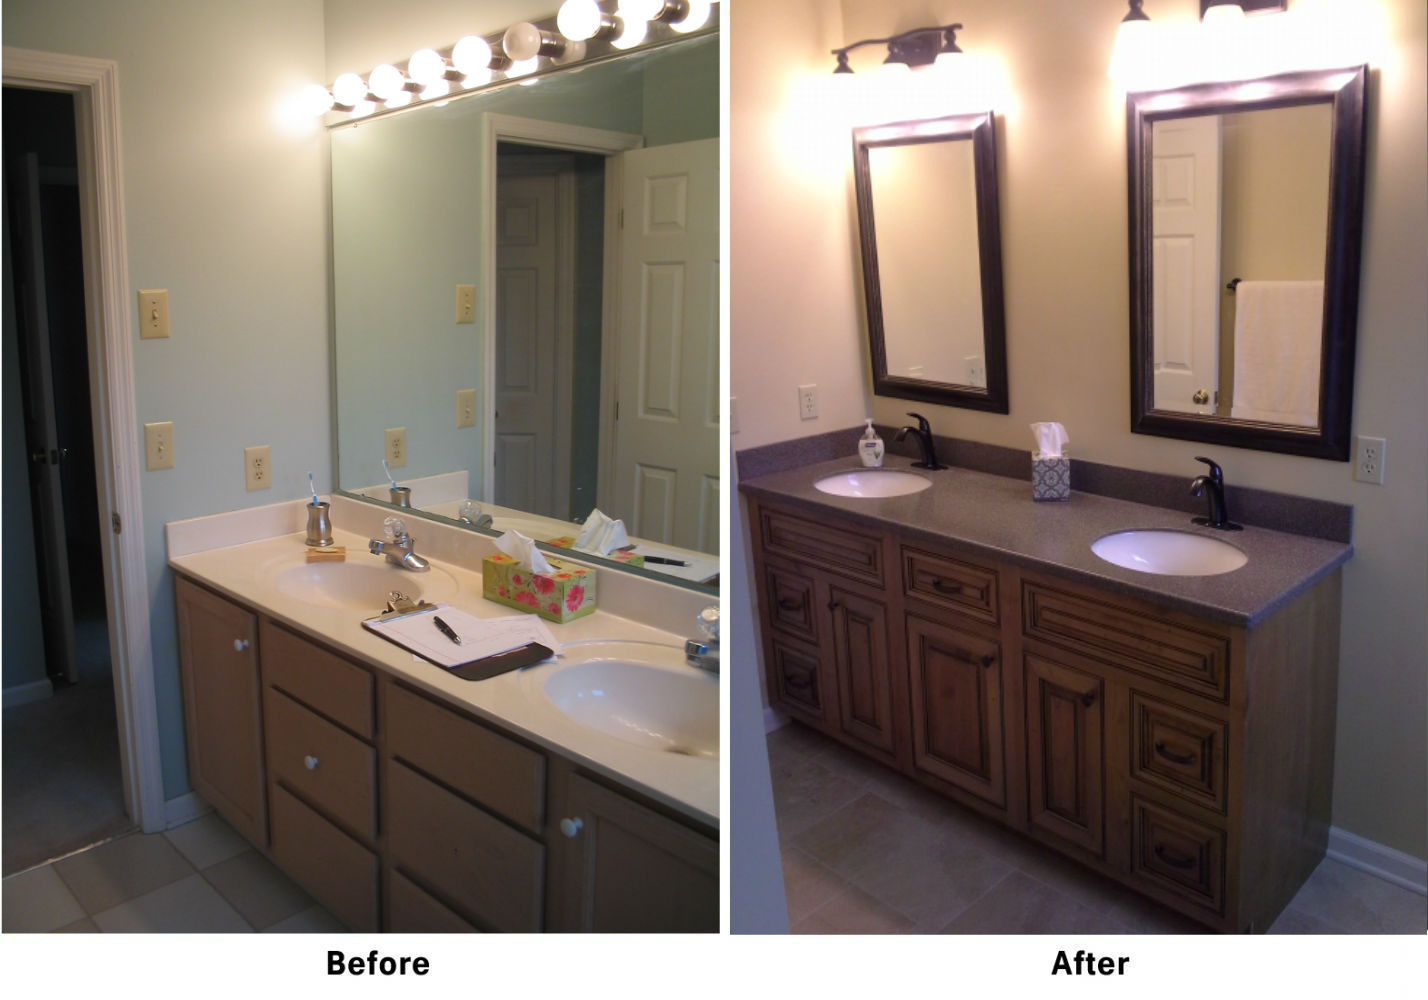 3 Fantastic Remodeling Projects To Spend Your Tax Return